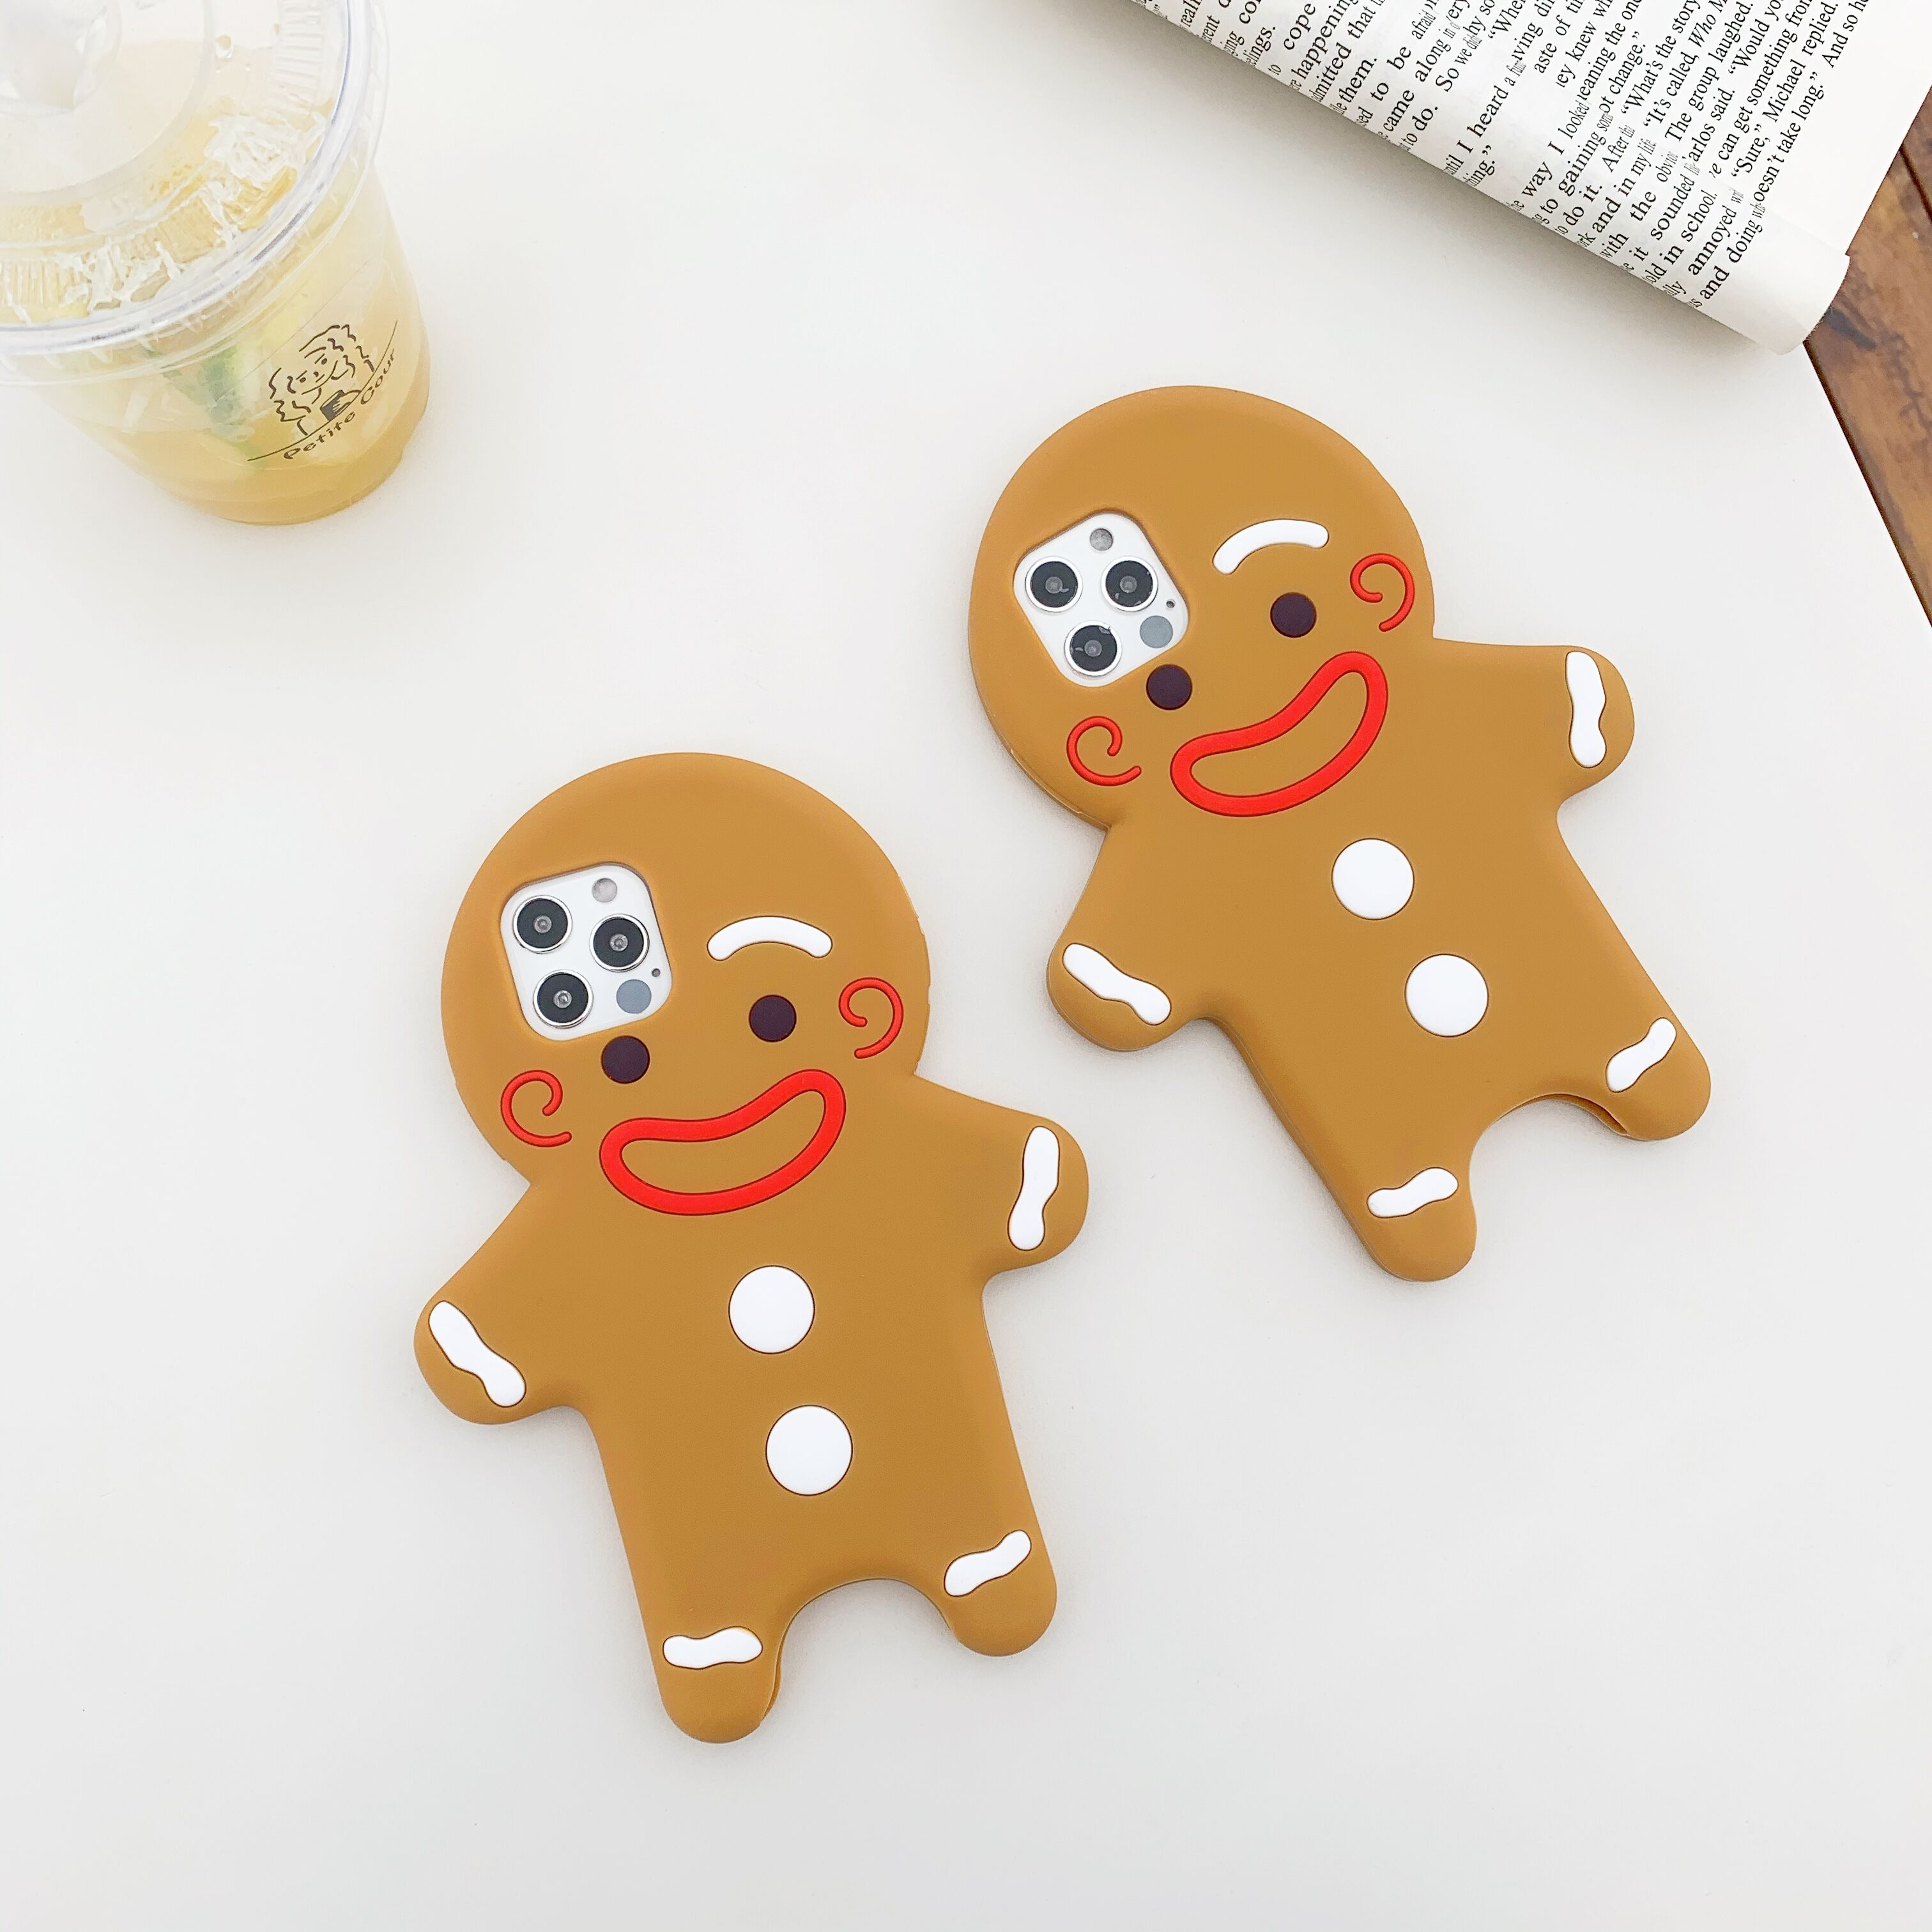 3D Cartoon Gingerbread Man Phone Case For Iphone 12 Pro 11 Pro Max 7 Plus 8 X XS Max XR SE 2020 Cute Soft Silicone Rubber Cover